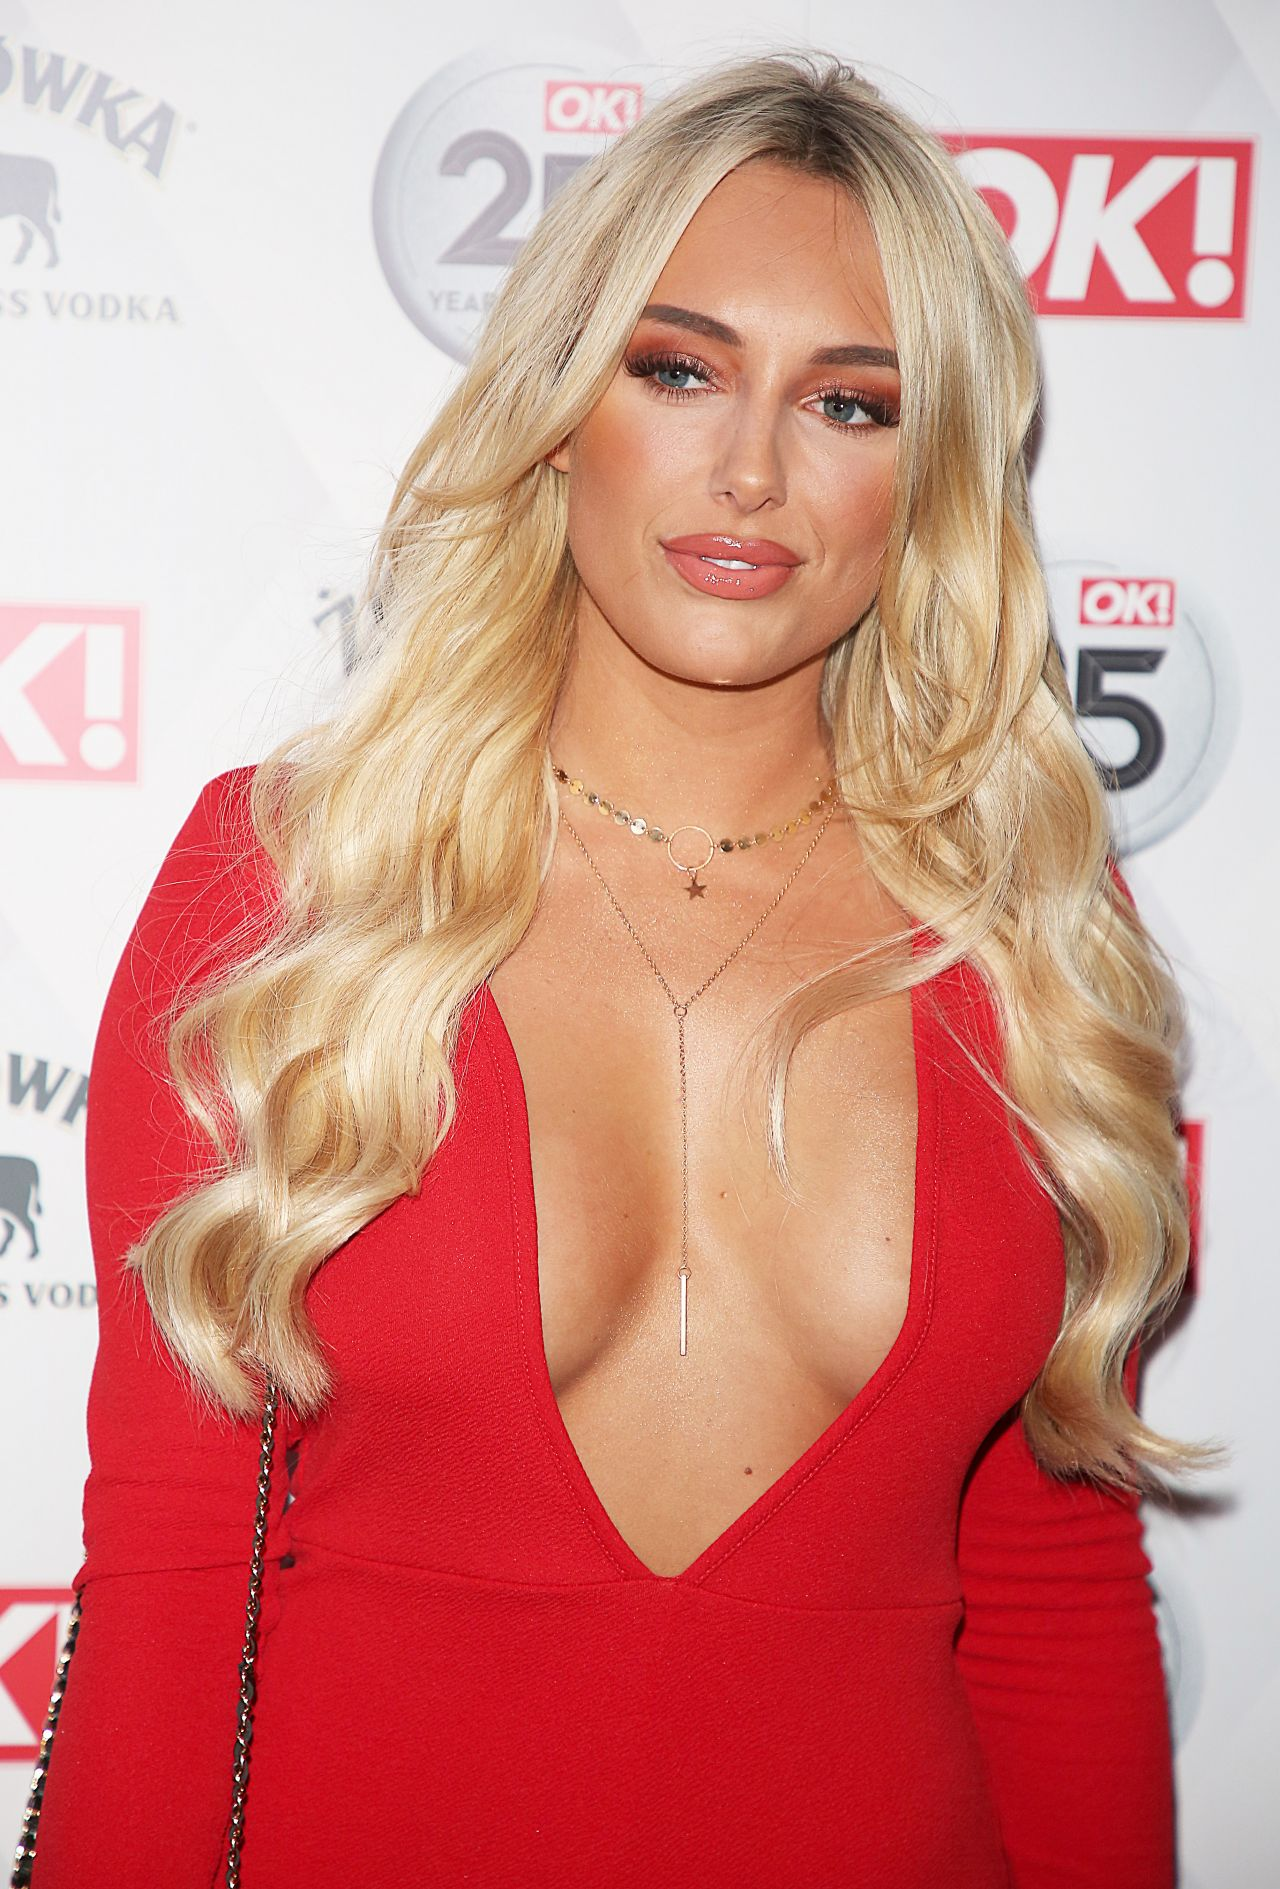 Amber Turner Ok Magazine S Party In London 03 21 2018